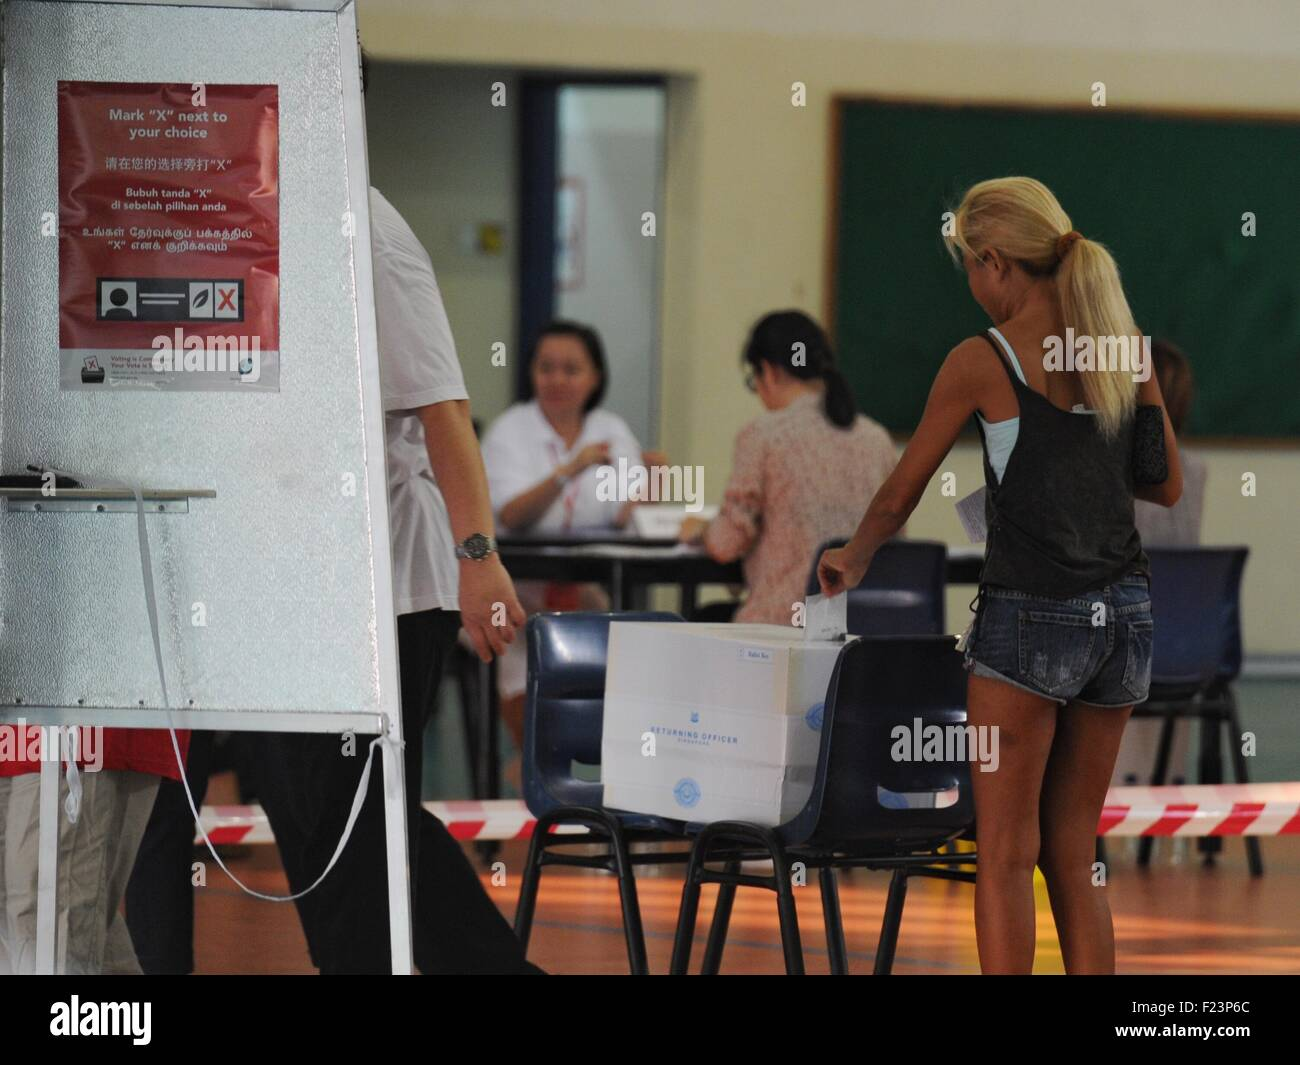 Singapore. 11th Sep, 2015. Singaporeans vote at a polling station at Singapore's Toa Payoh, Sept. 11, 2015. - Stock Image